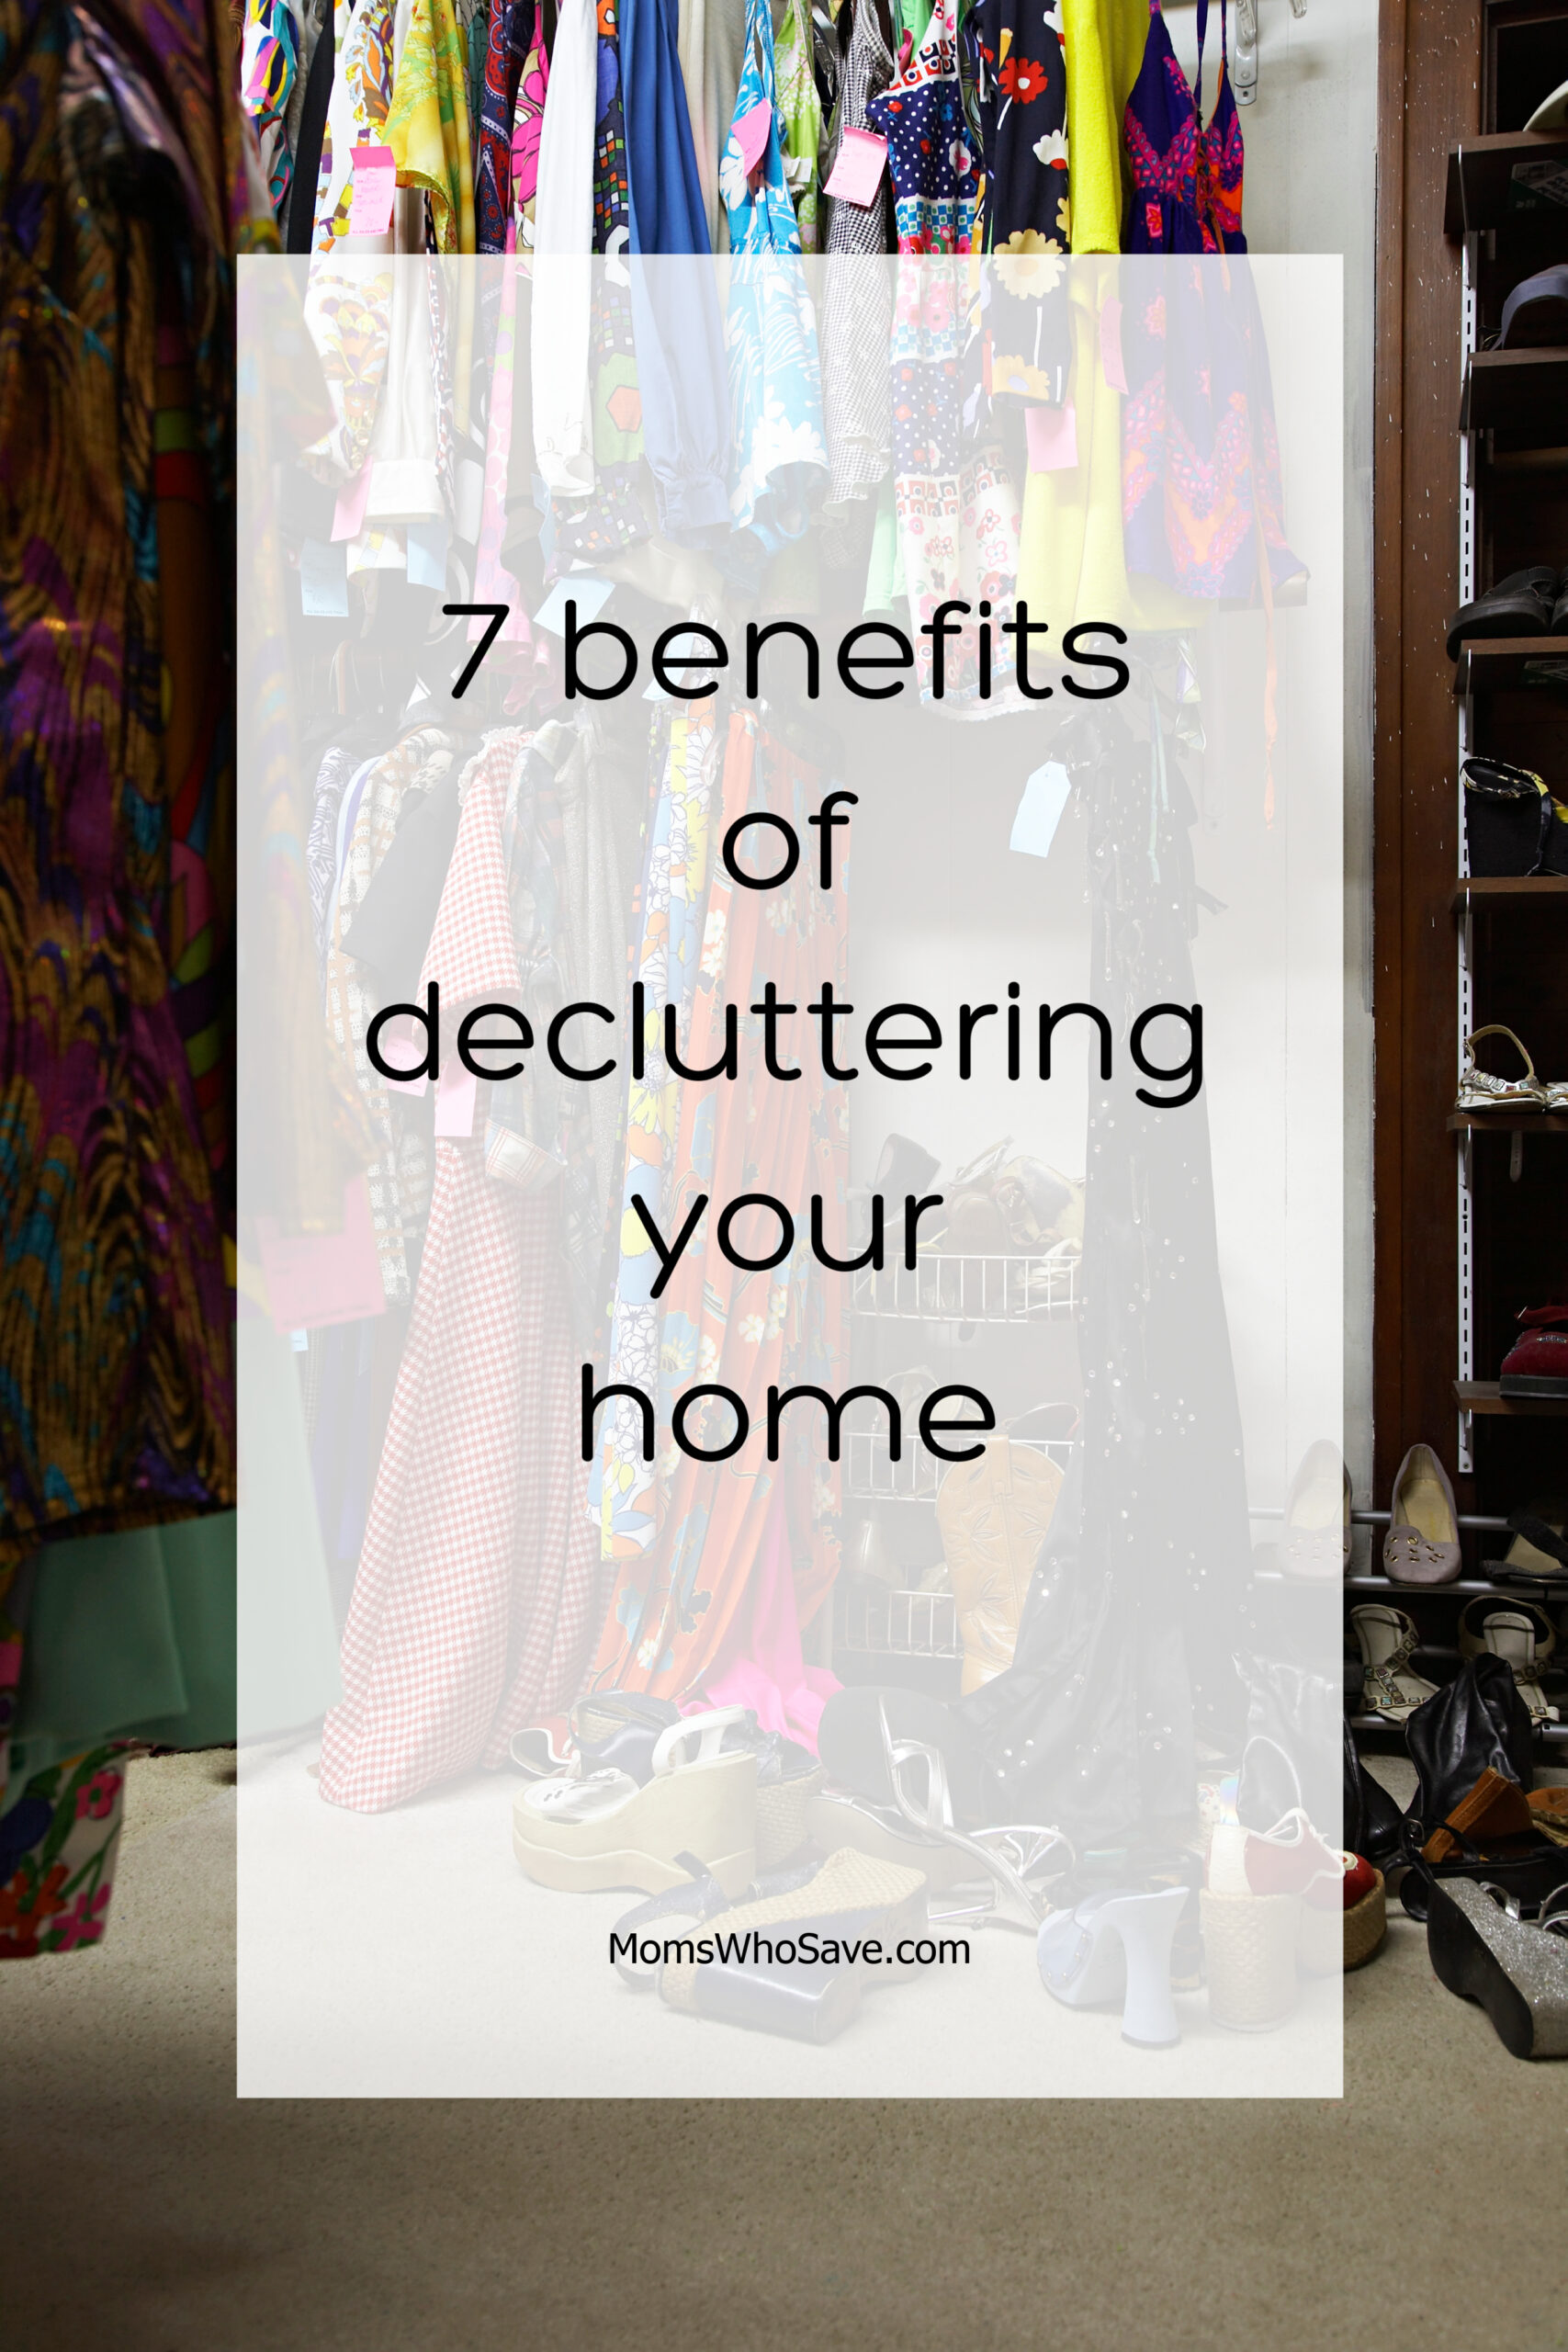 benefits of decluttering your home